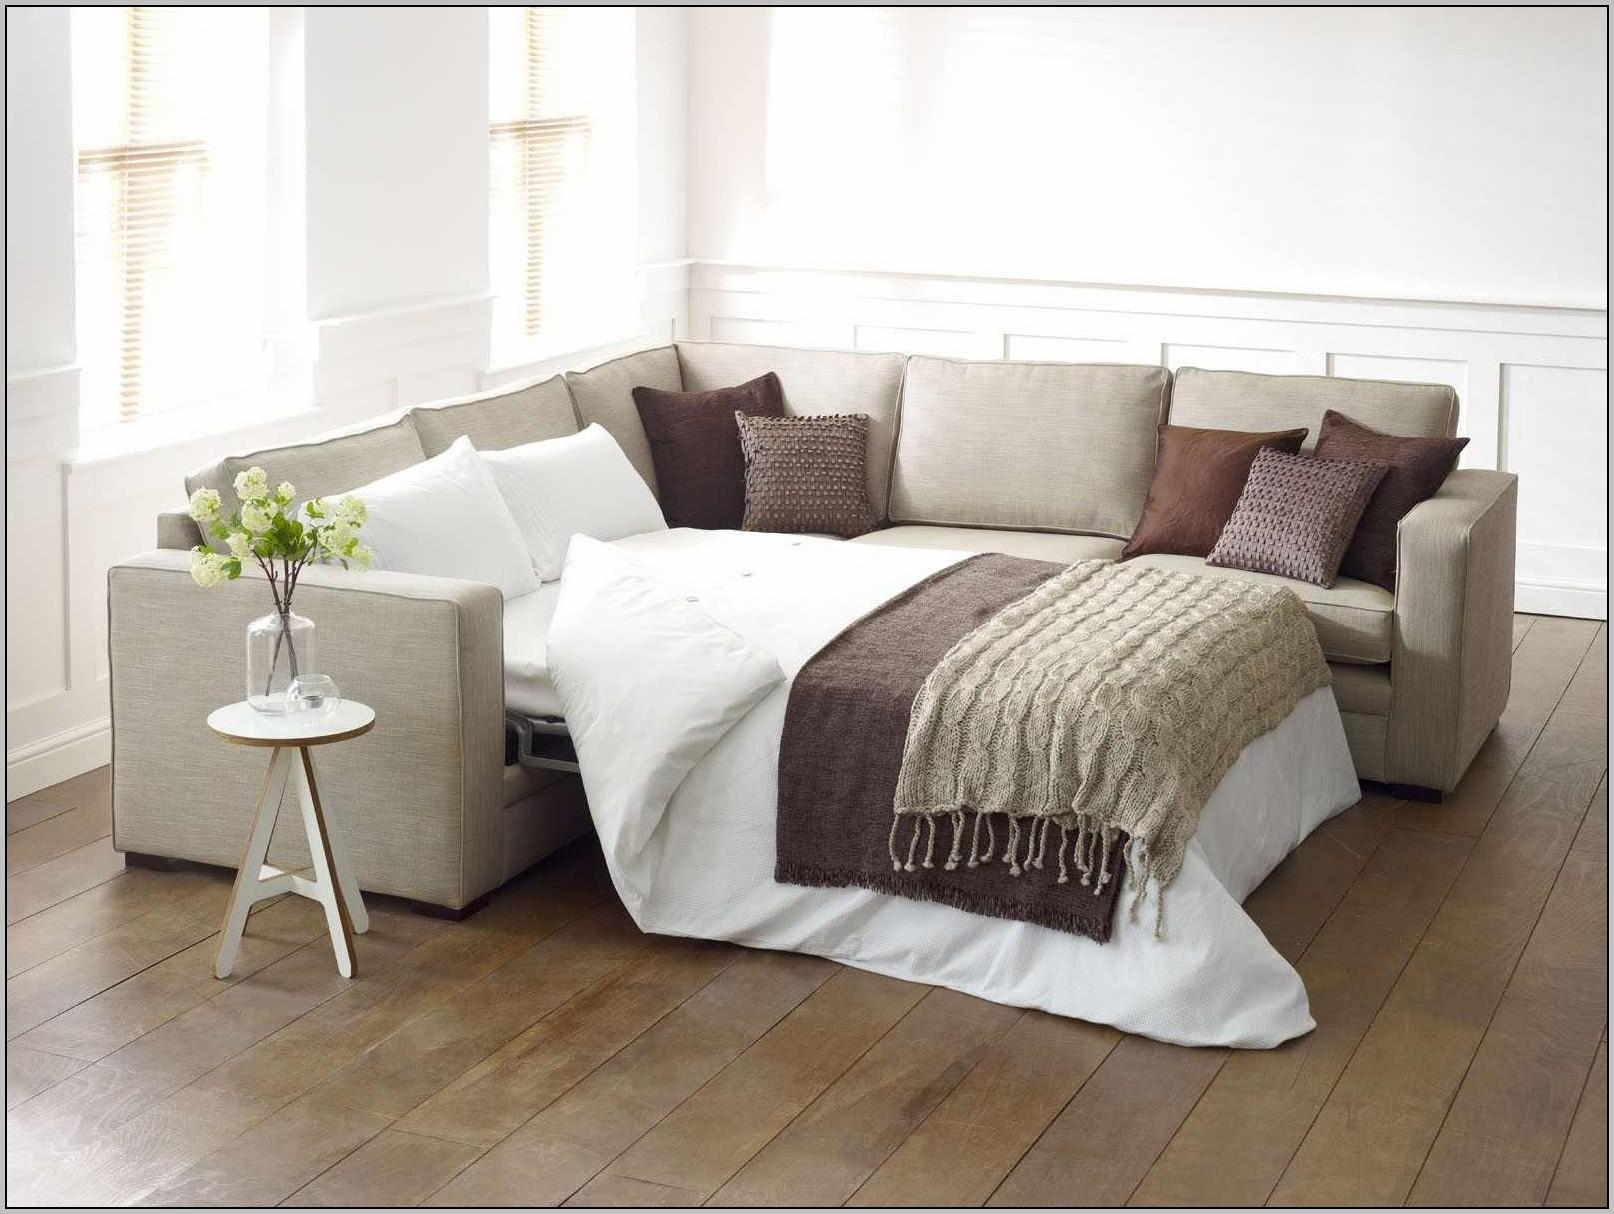 Sleeper Sofa Mattress Cover With Design Ideas 42338 | Kengire Throughout Sleeper Sofas Mattress Covers (Image 9 of 20)